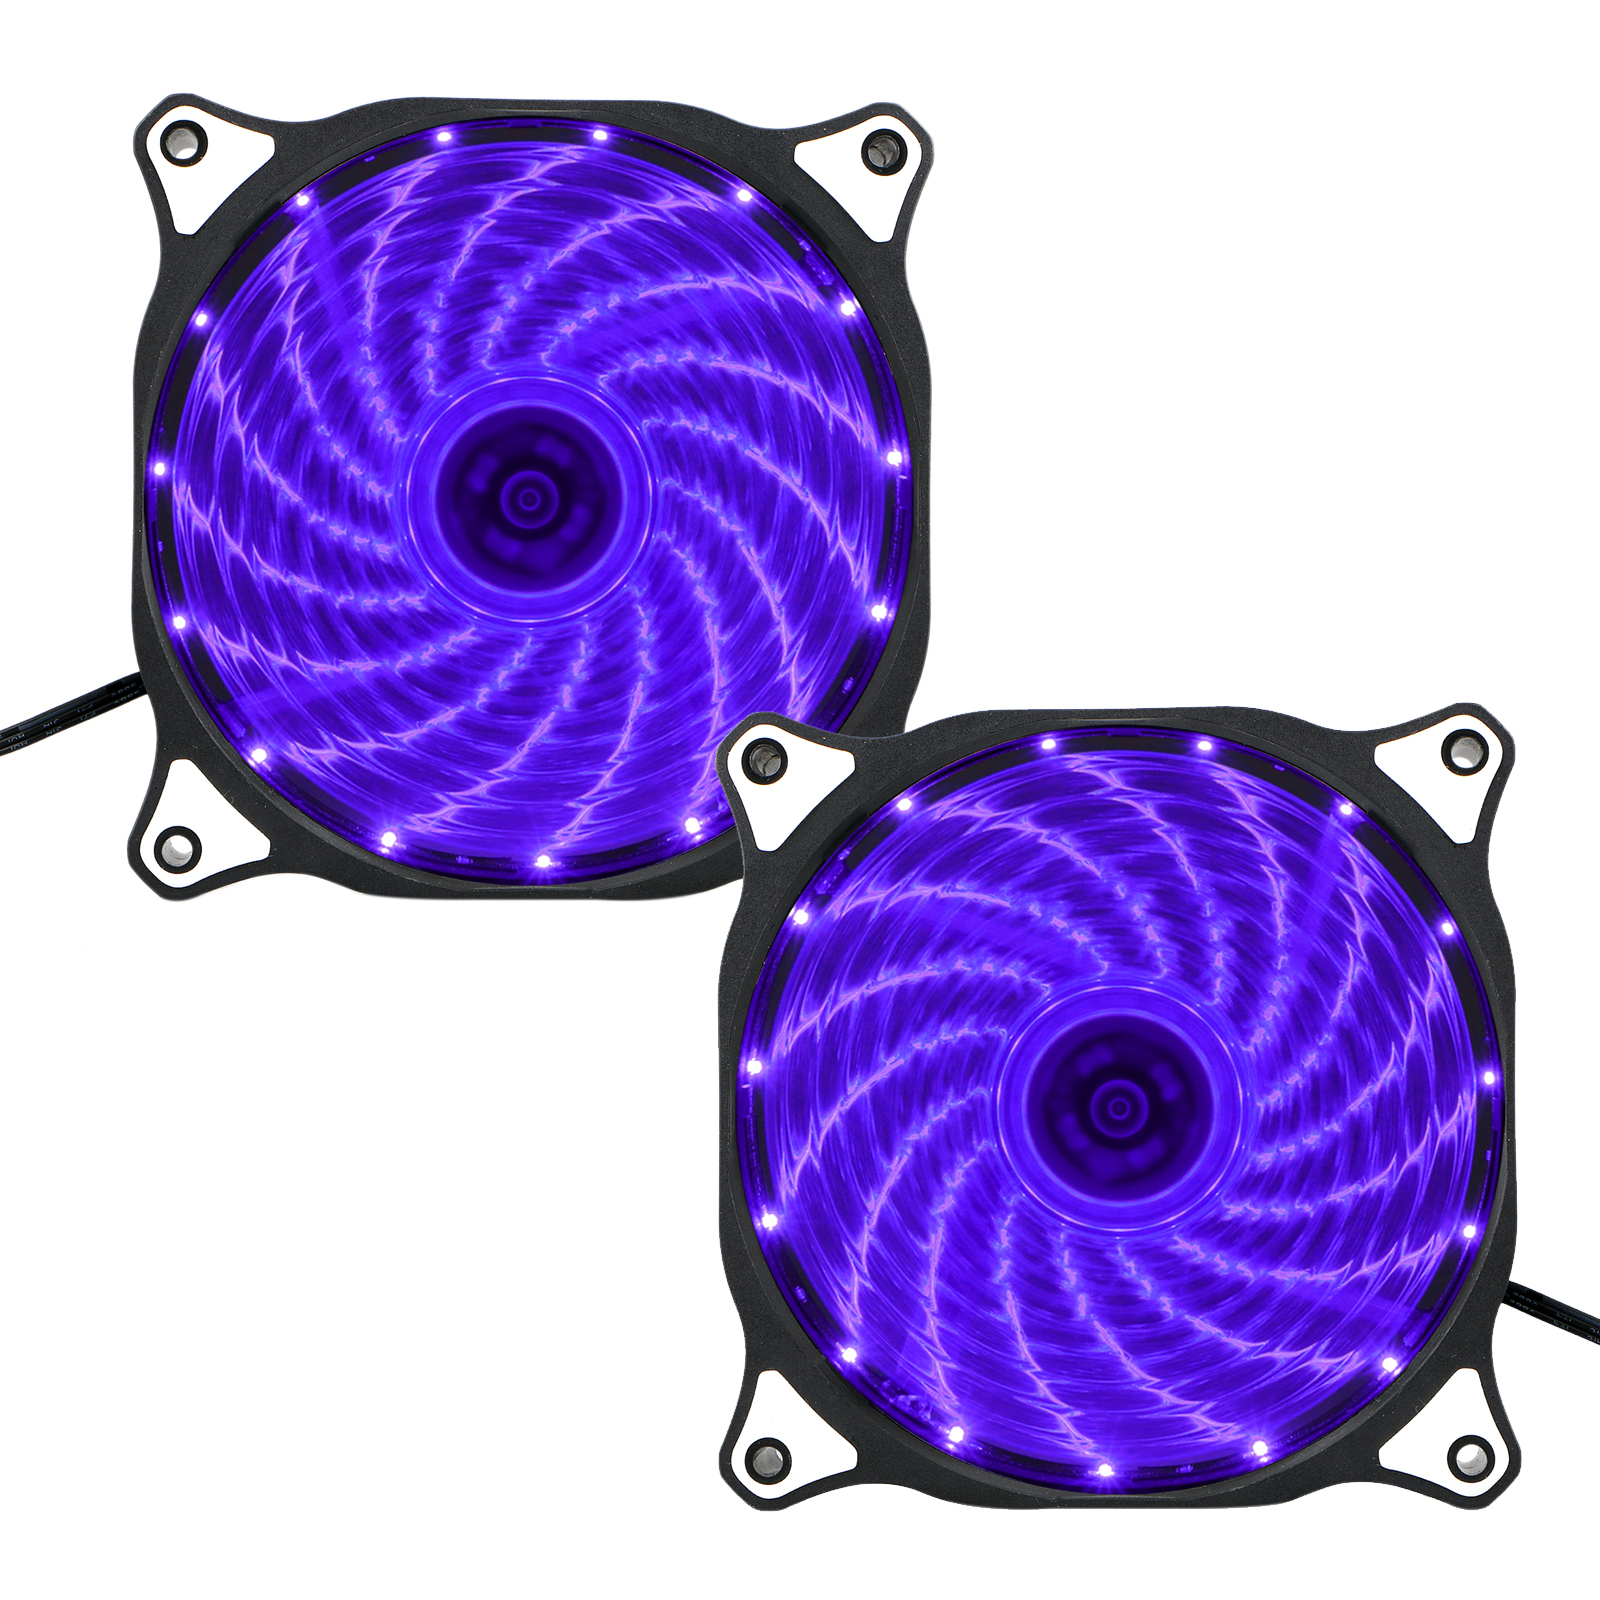 TSV 2 Pack 120mm 15 LED Neon Light Computer PC Case Cooling Fan Quiet Sleeve Bearing